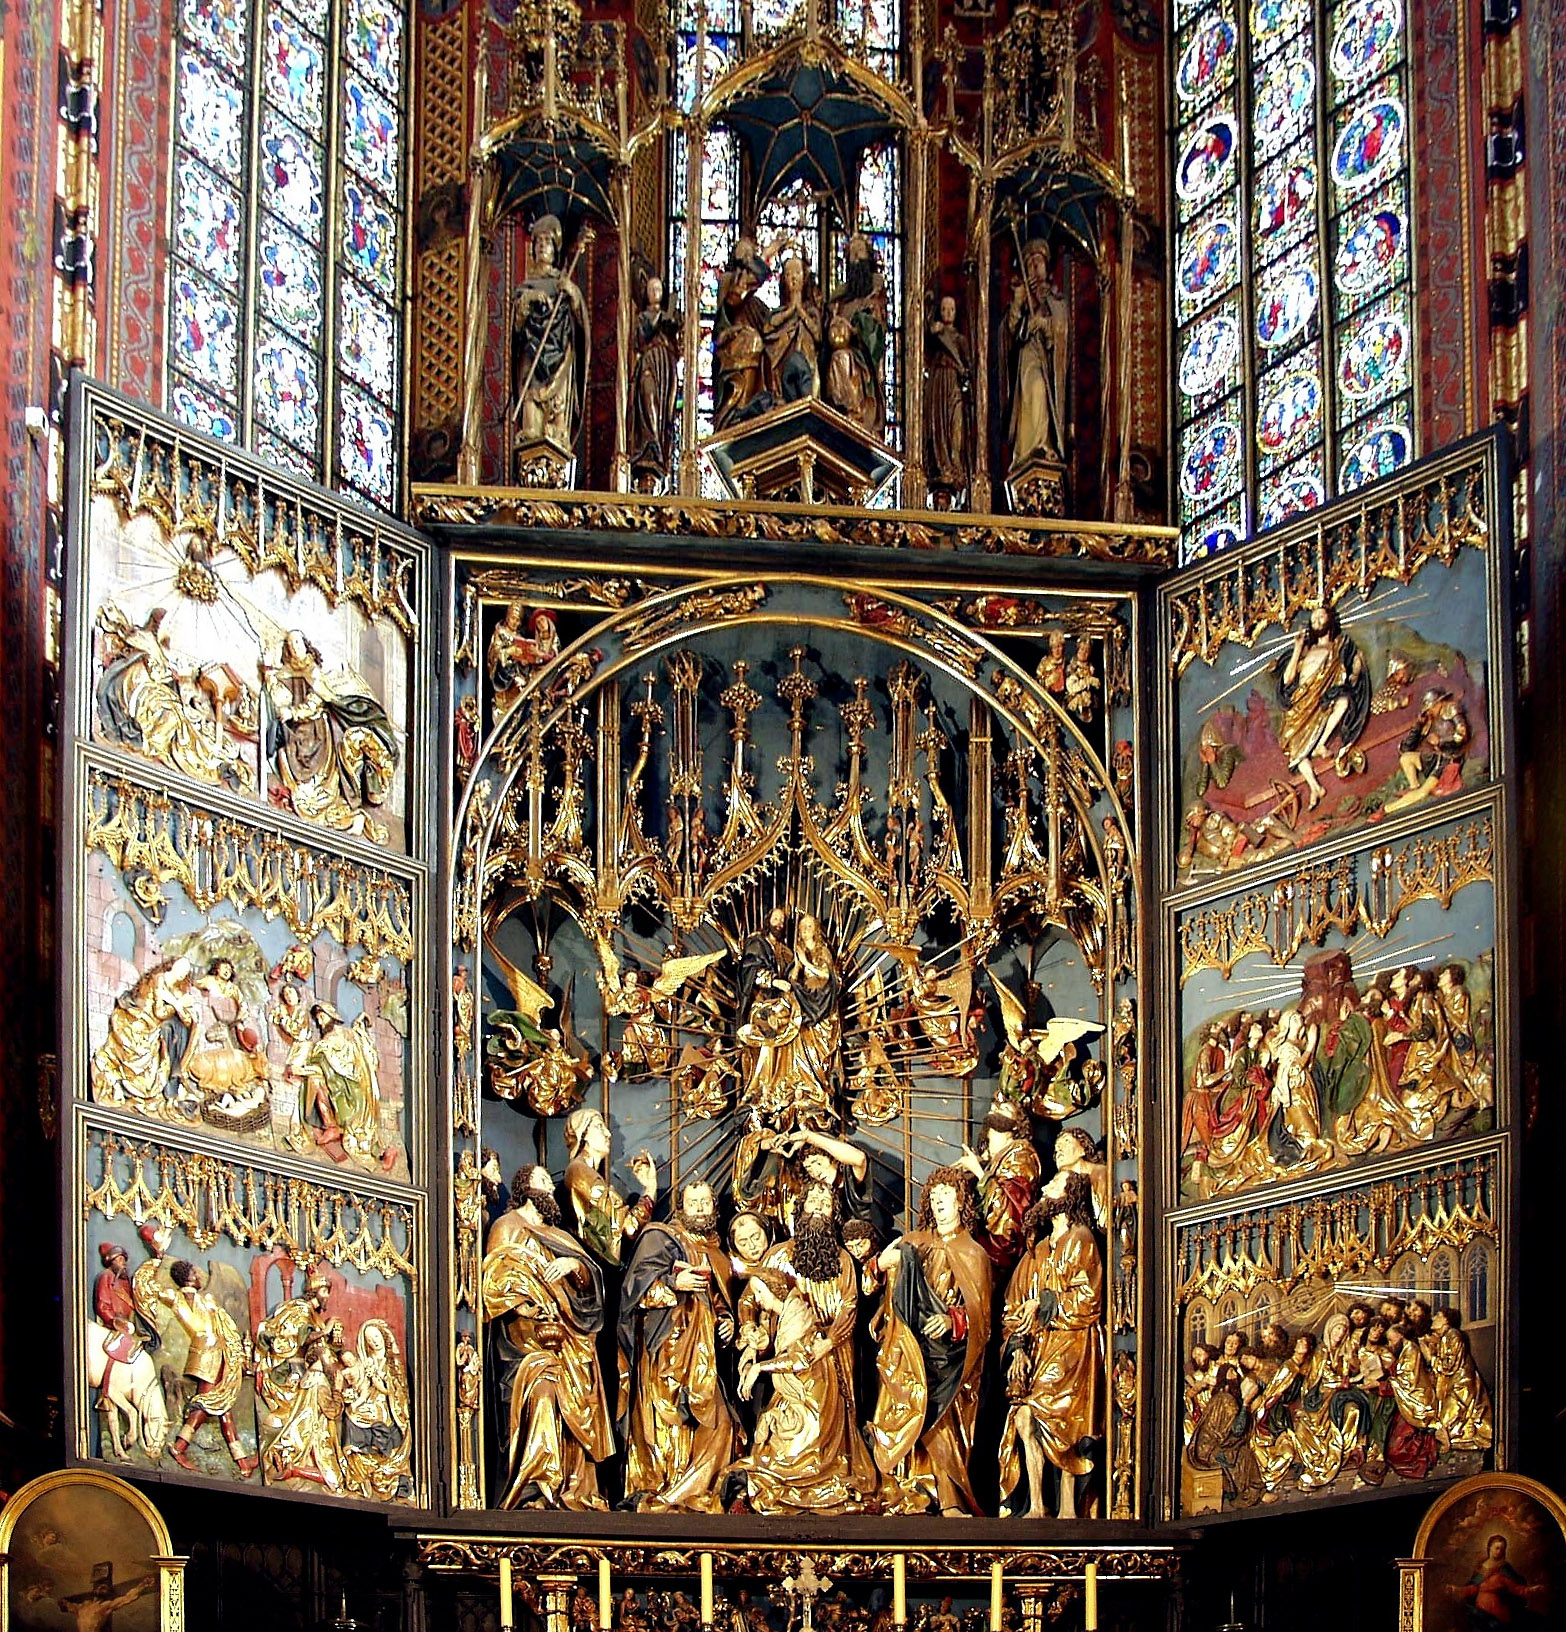 https://upload.wikimedia.org/wikipedia/commons/6/6a/Altar_of_Veit_Stoss%2C_St._Mary%27s_Church%2C_Krakow%2C_Poland.jpg